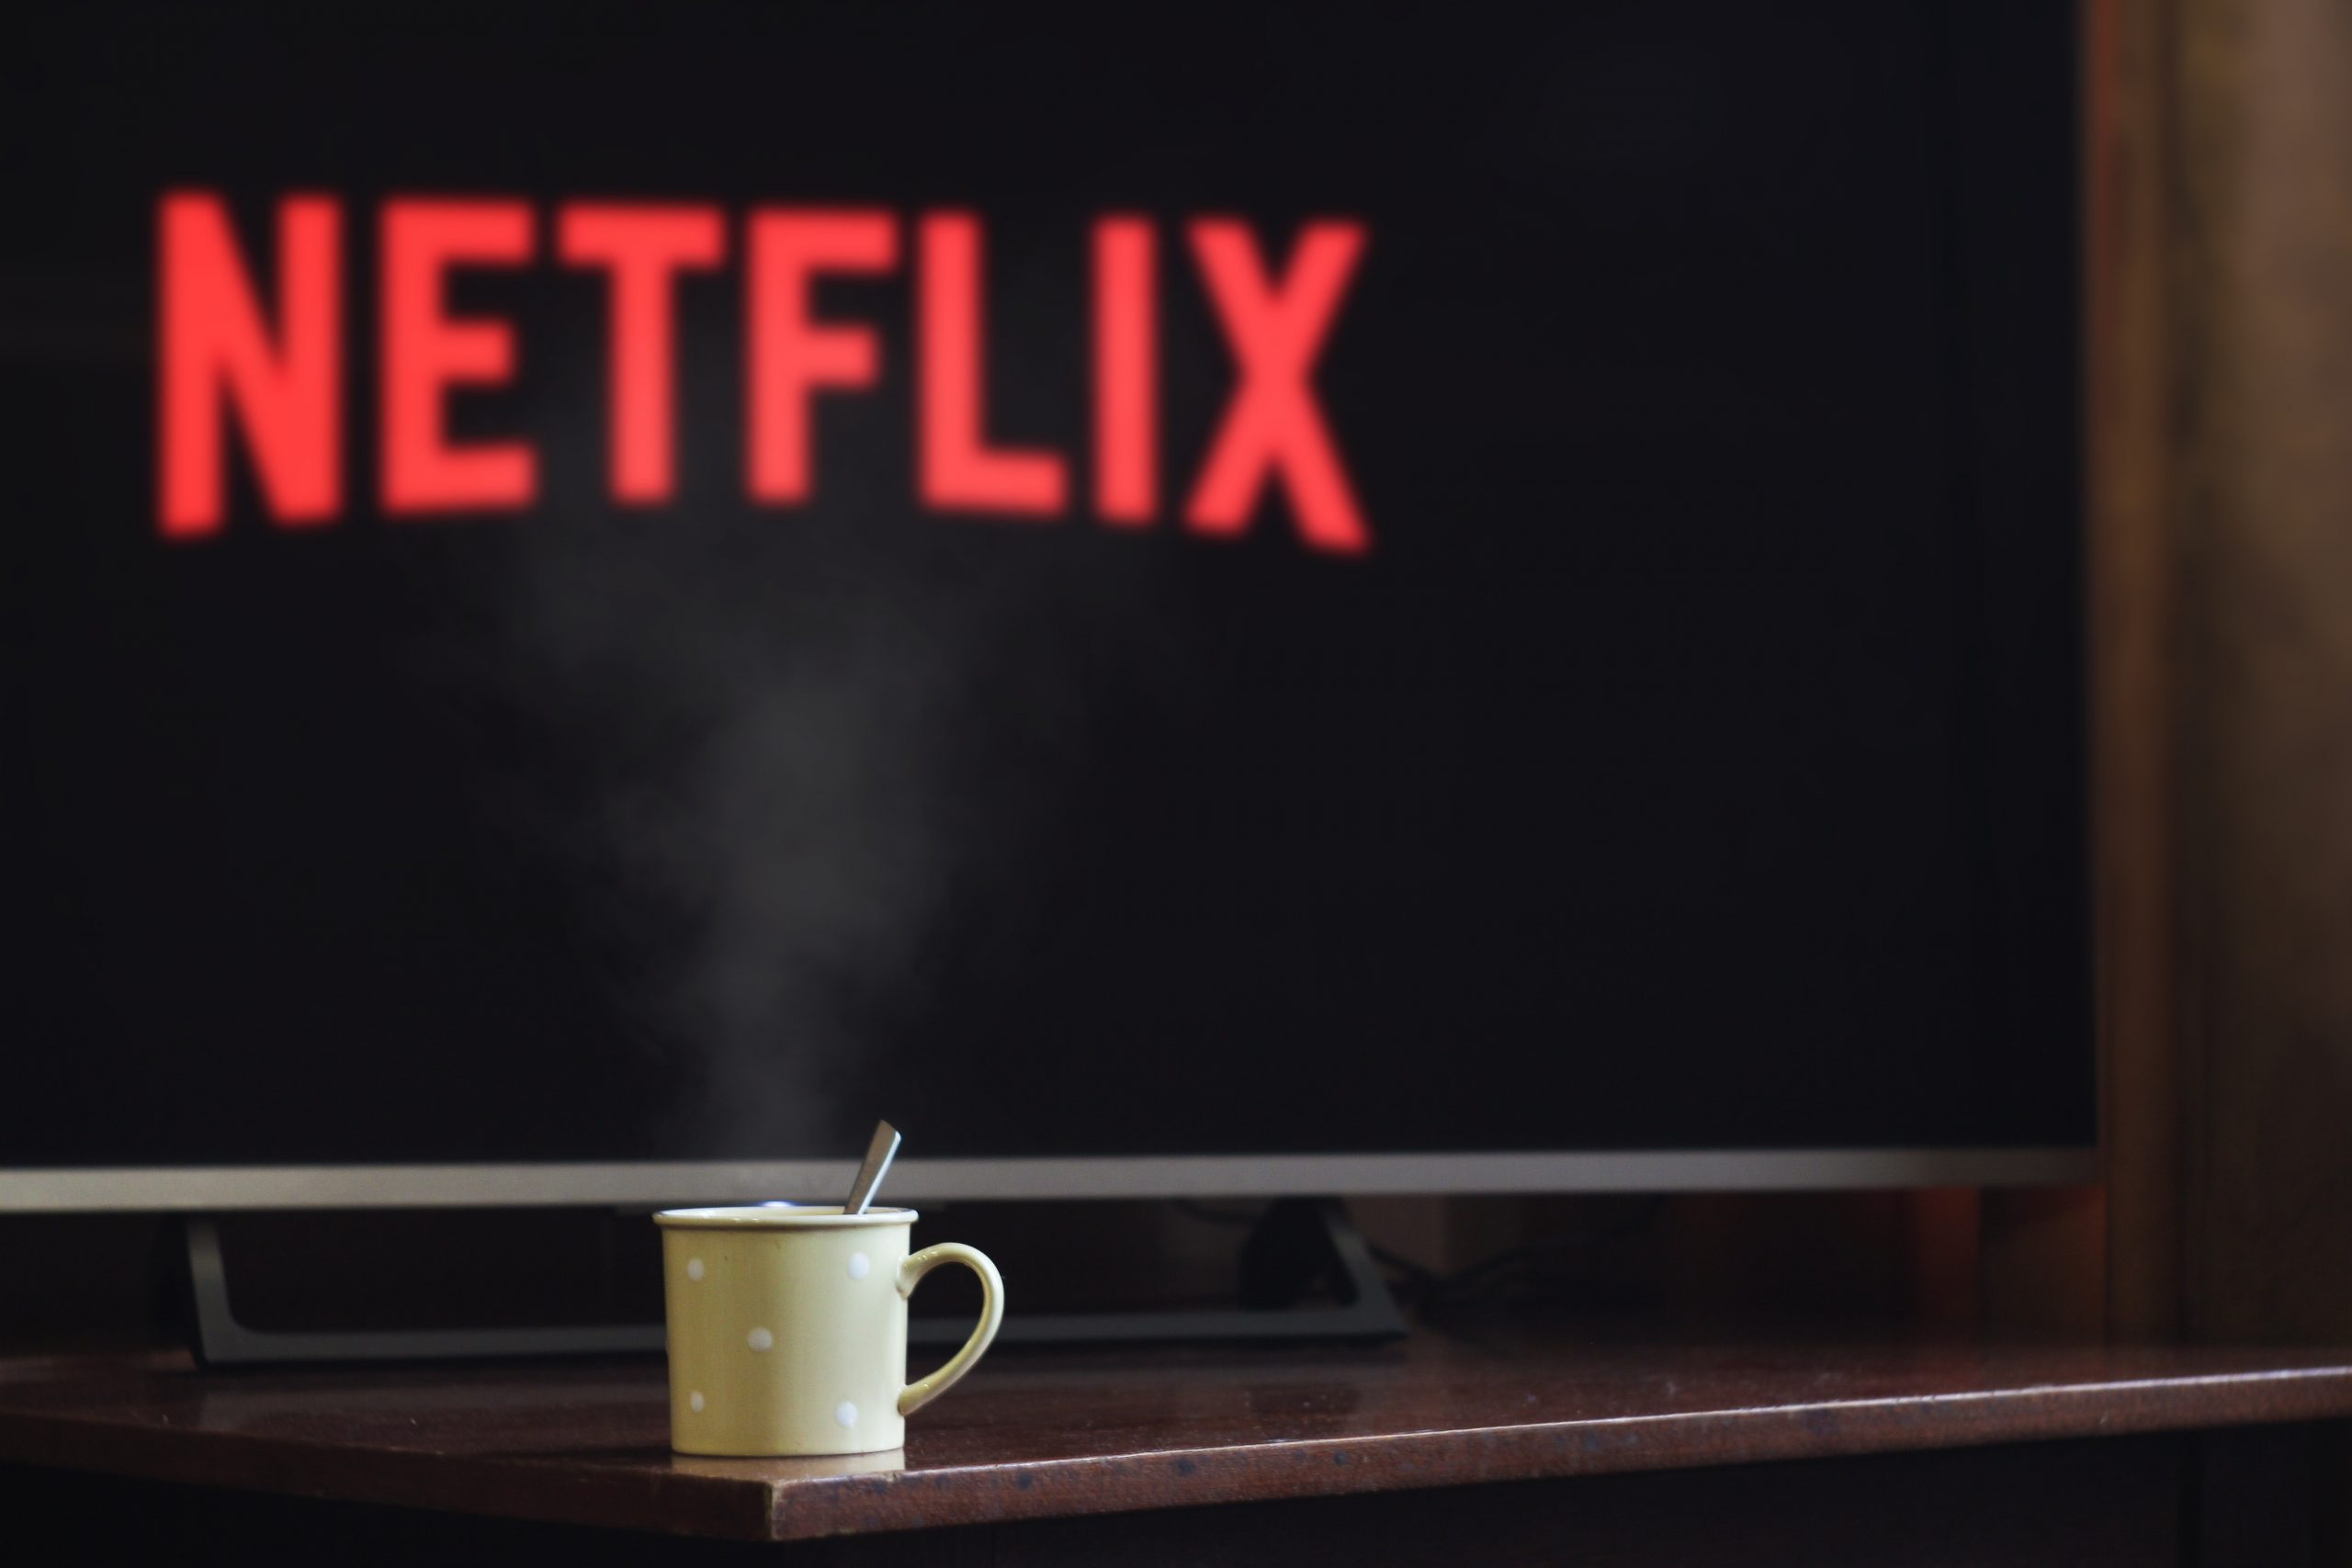 Coffee mug and Netflix in front of TV